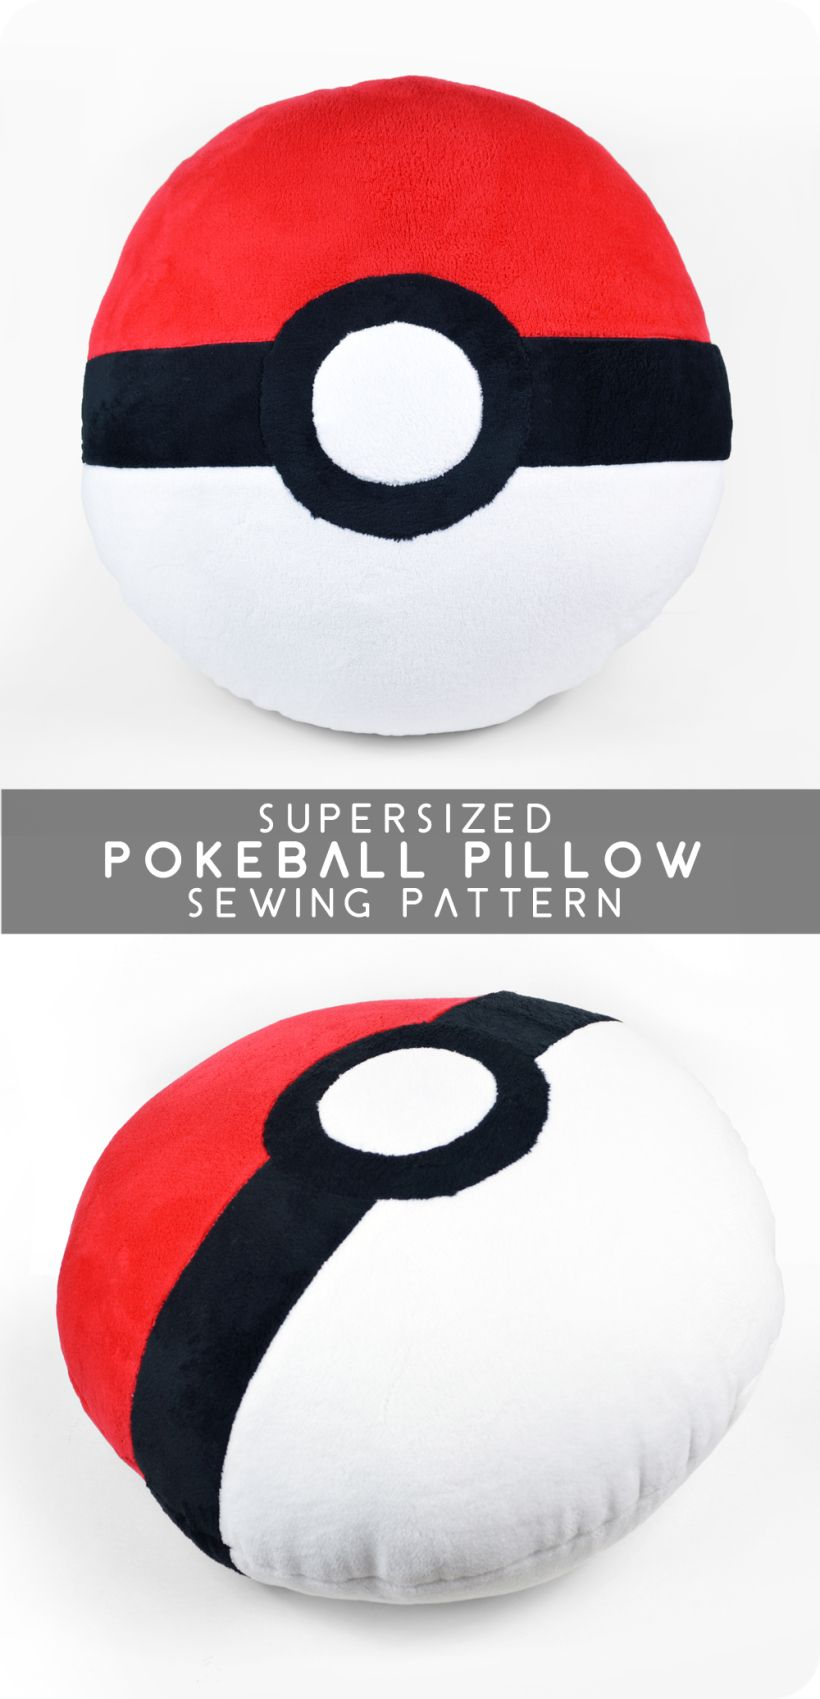 17 Pokemon Projects to Make | Kids corner. | Pinterest | Pokémon ...